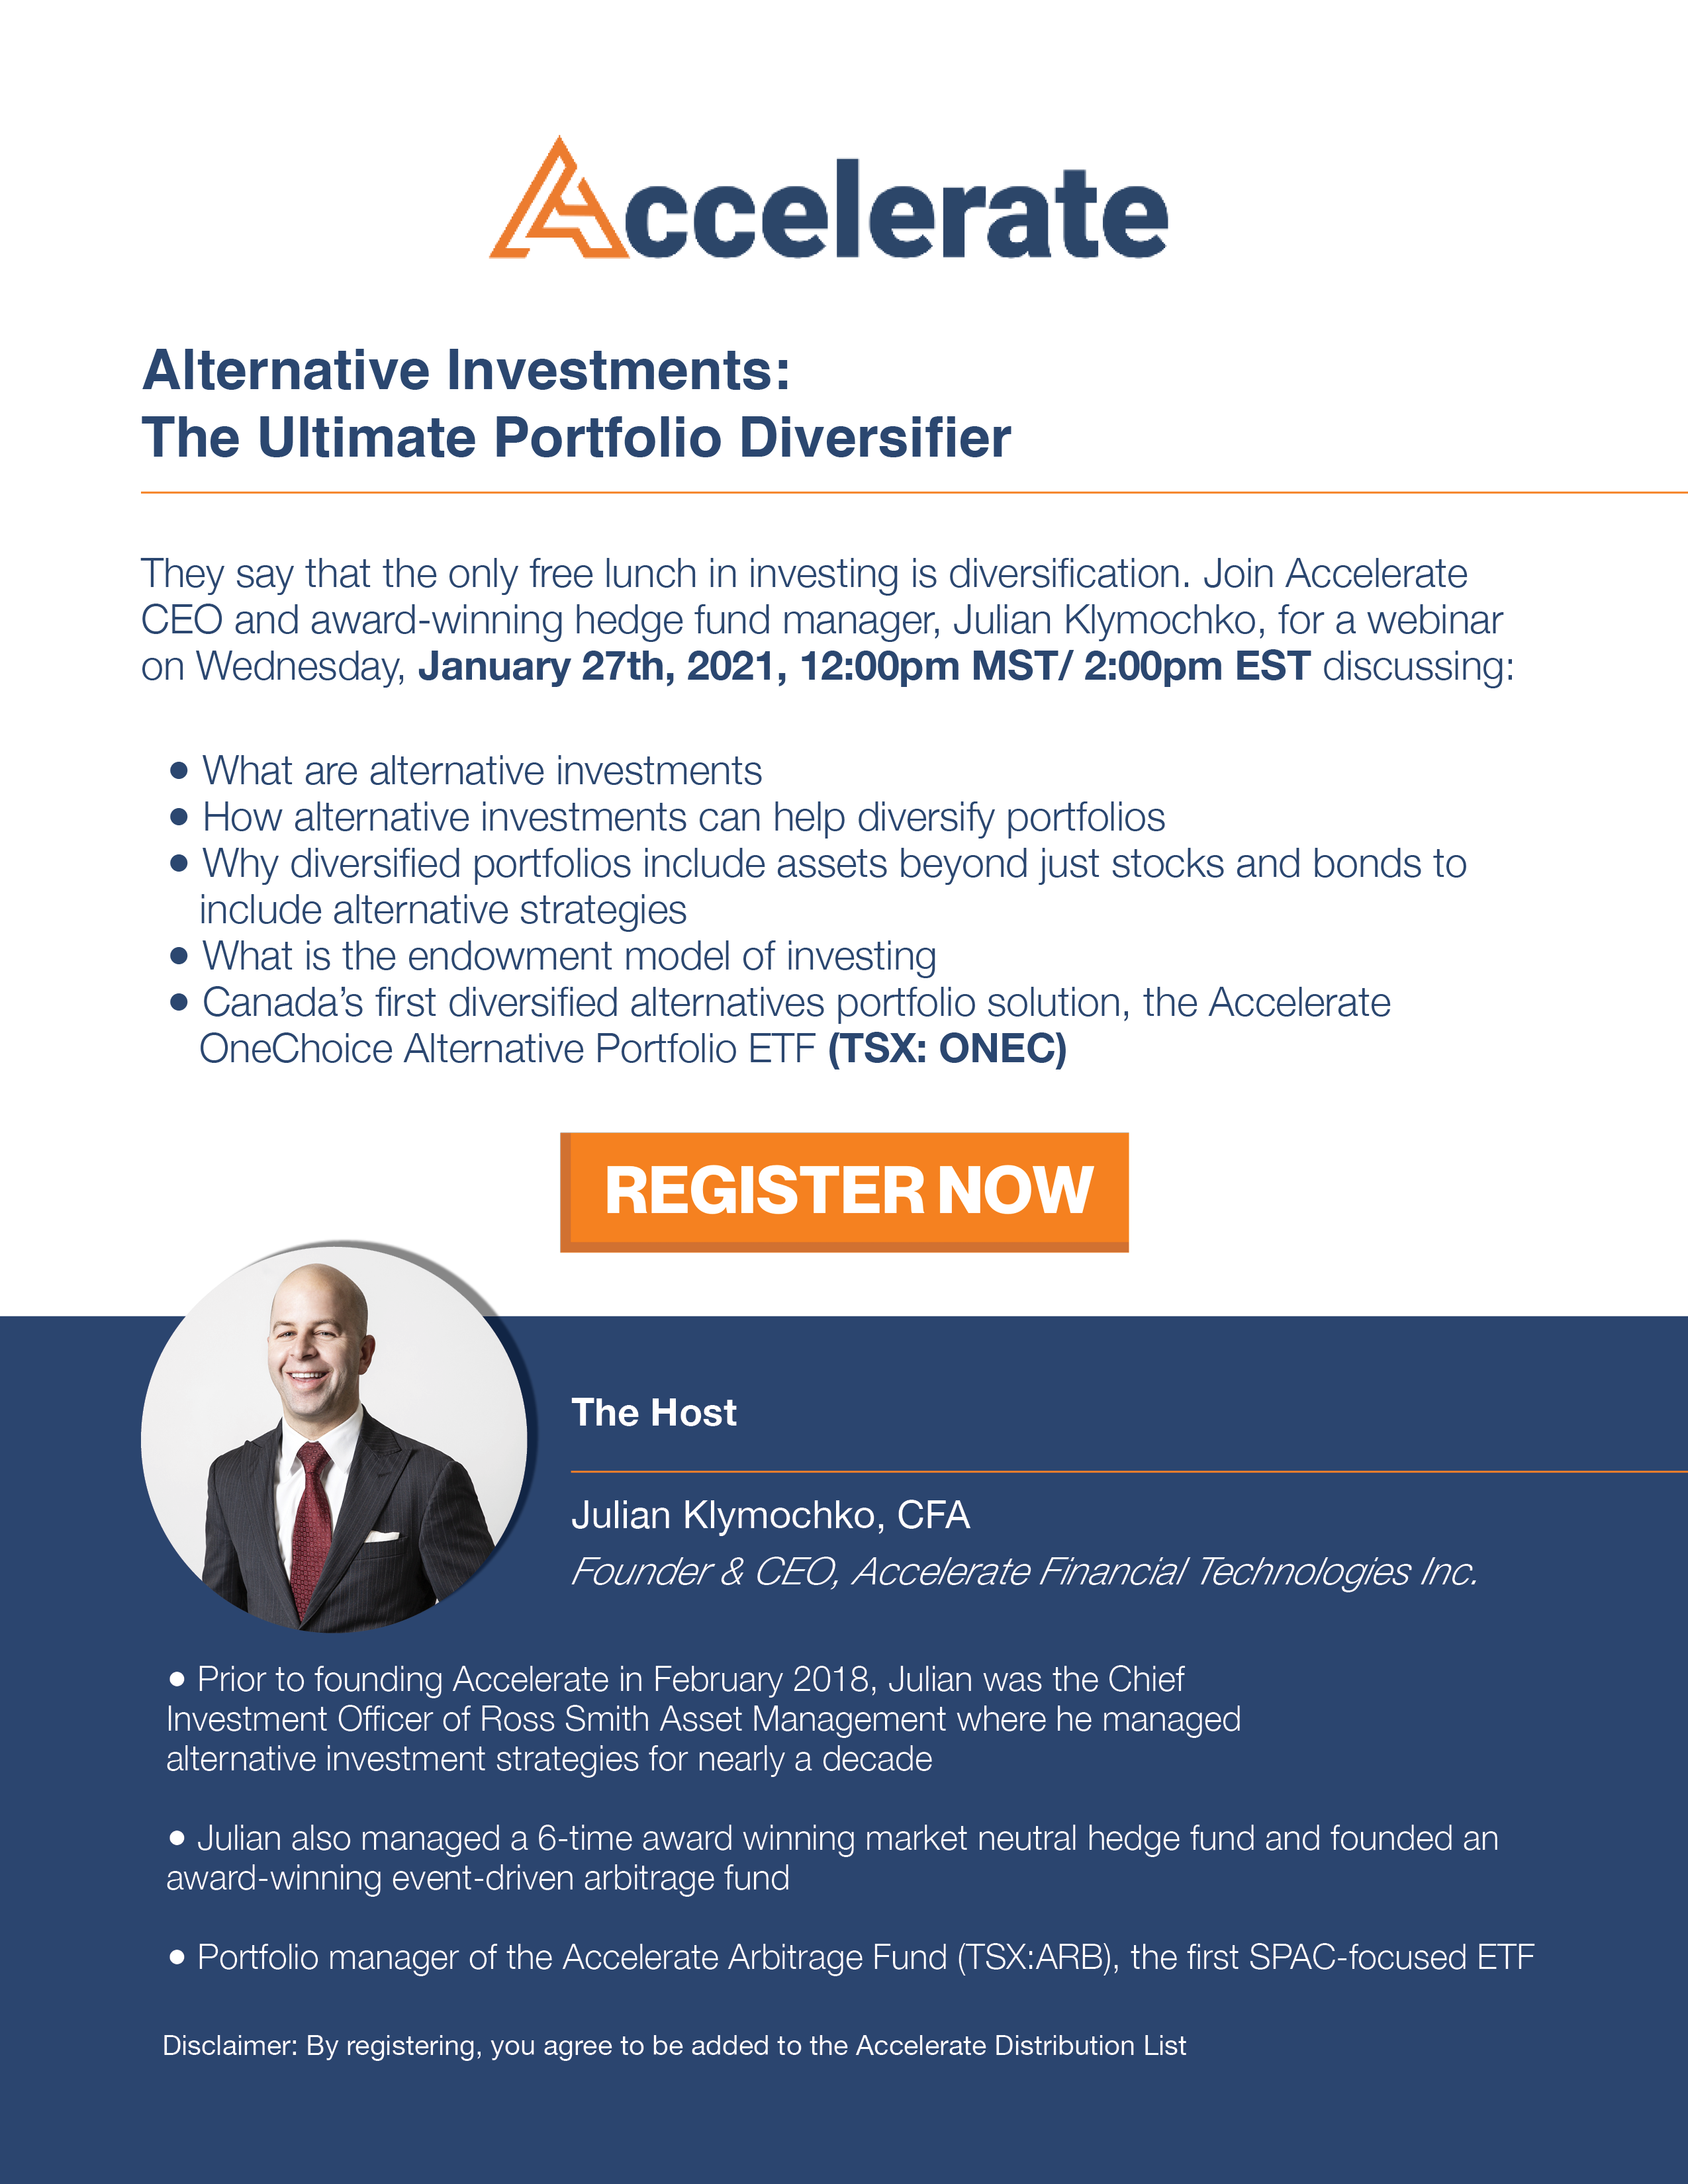 Webinar - Alternative Investments: The Ultimate Portfolio Diversifier